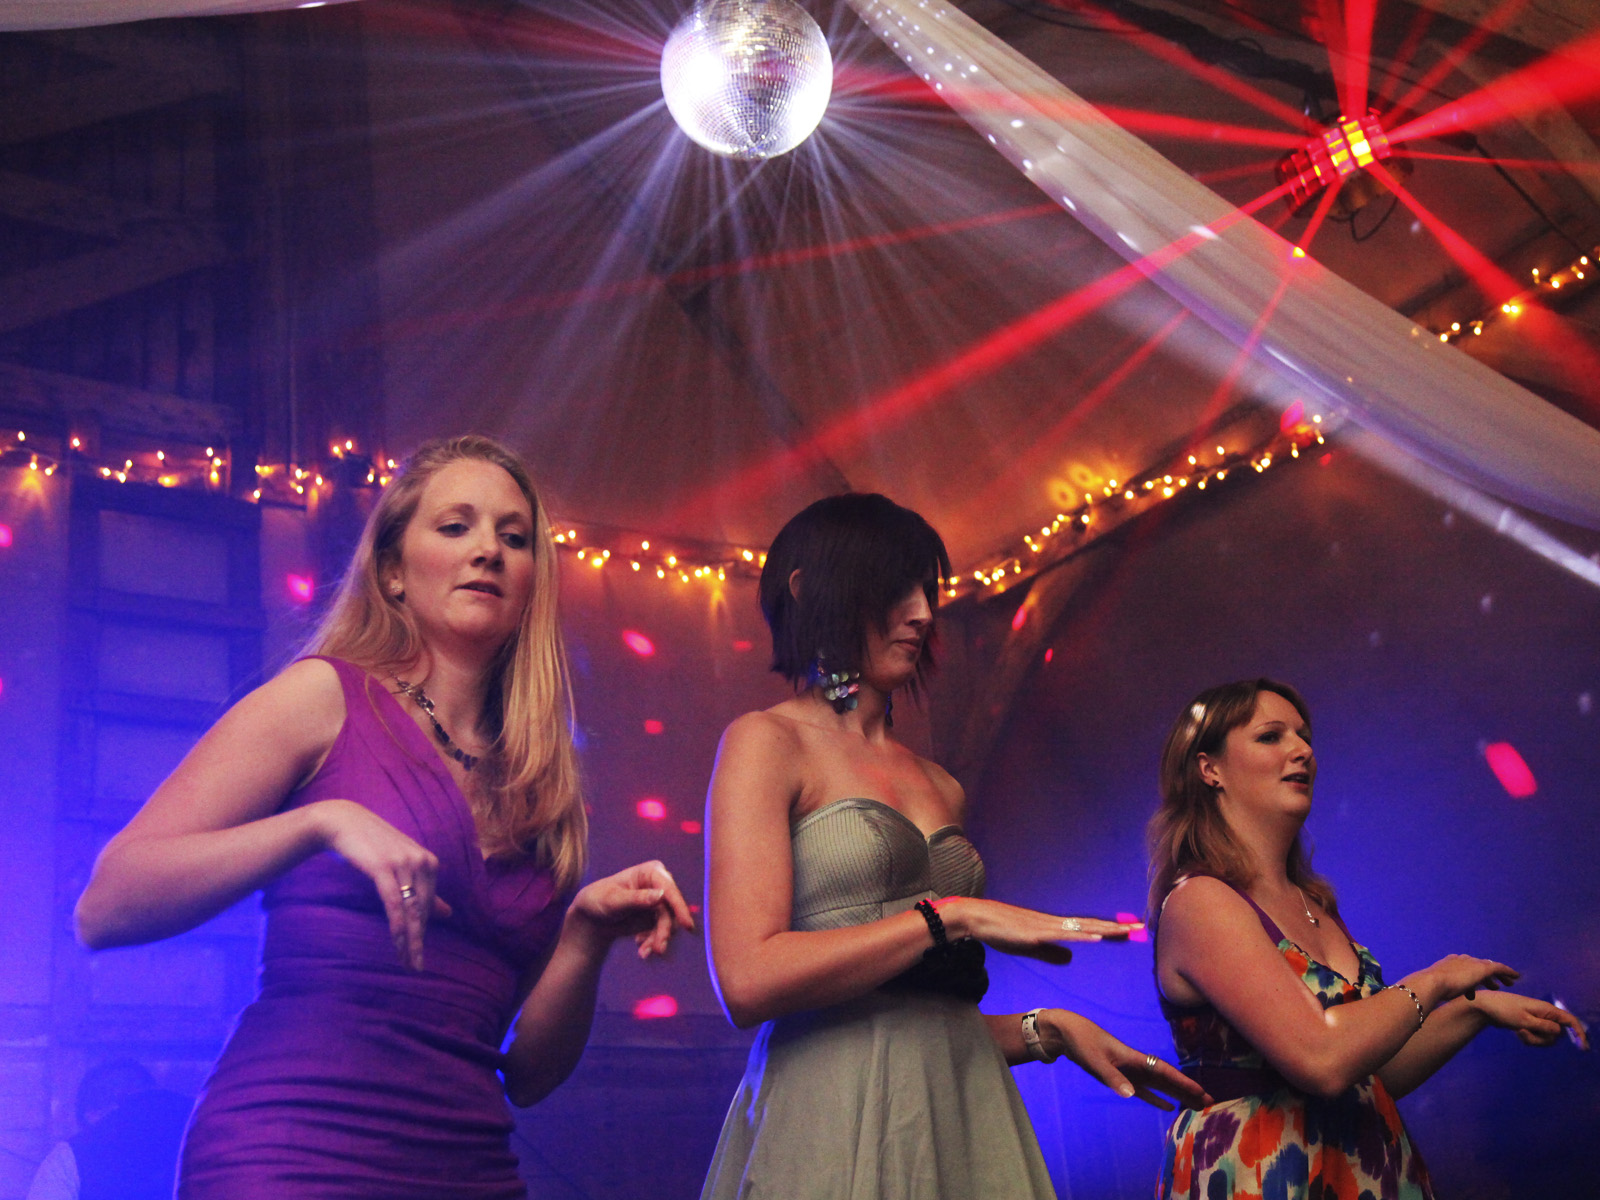 Dancers At A Wedding Disco